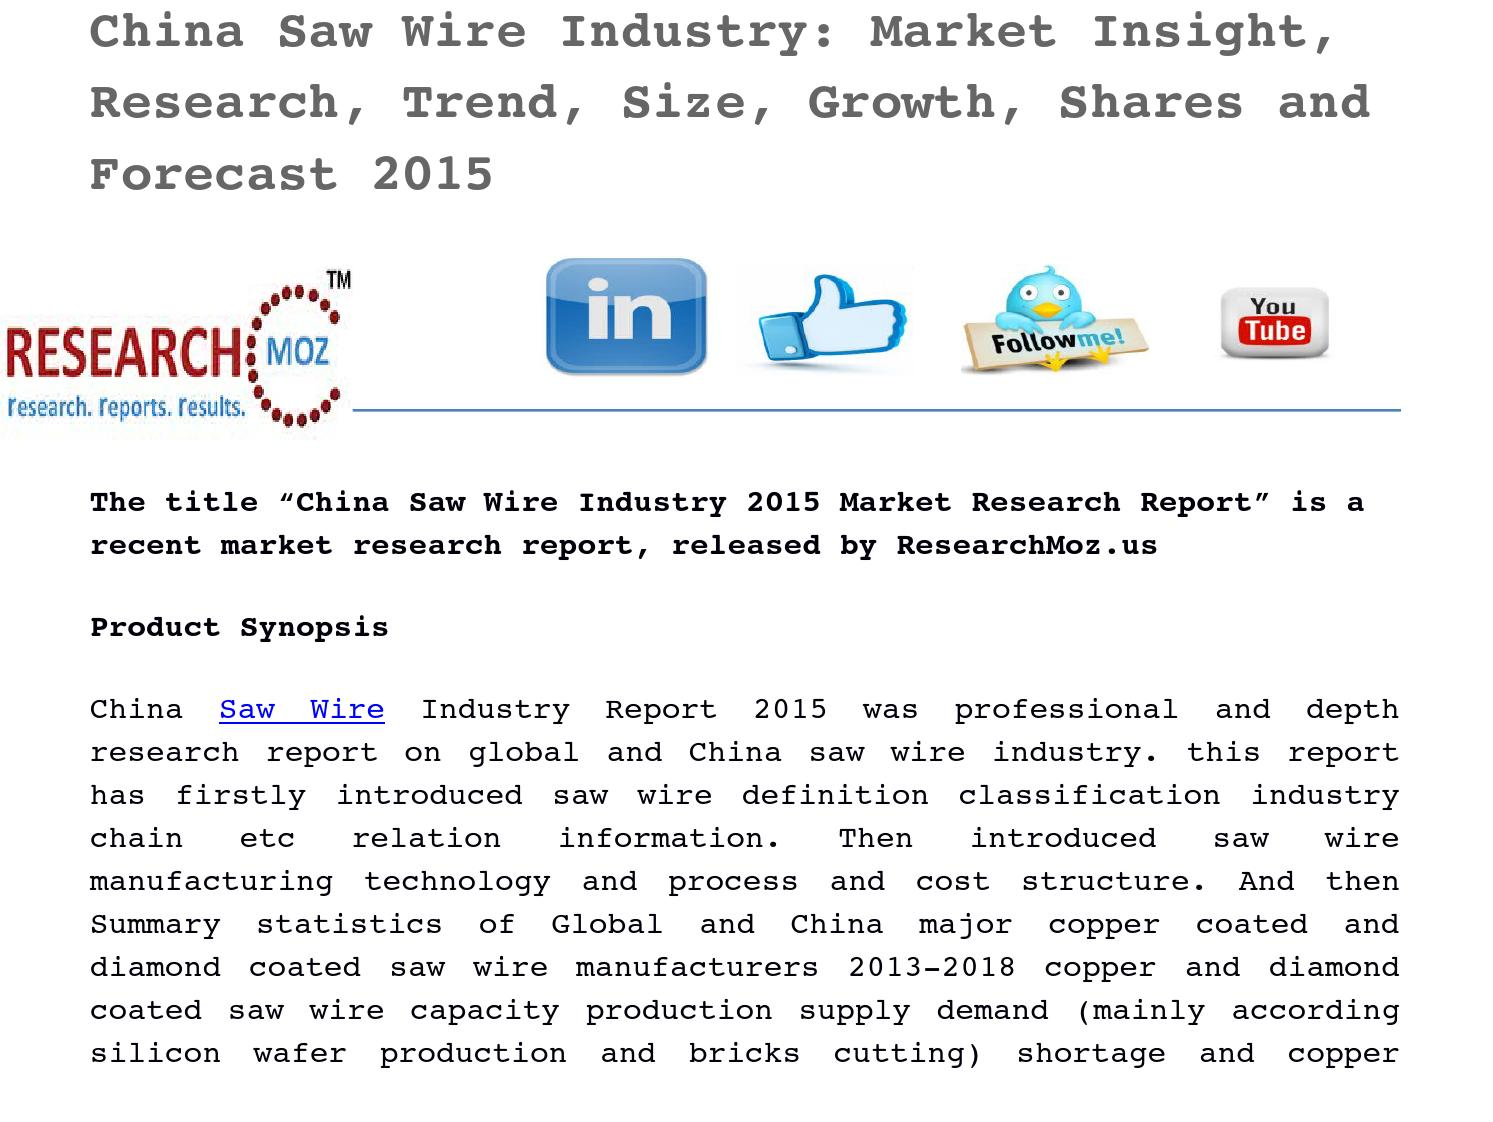 China Saw Wire Industry 2015 Market Research Report By